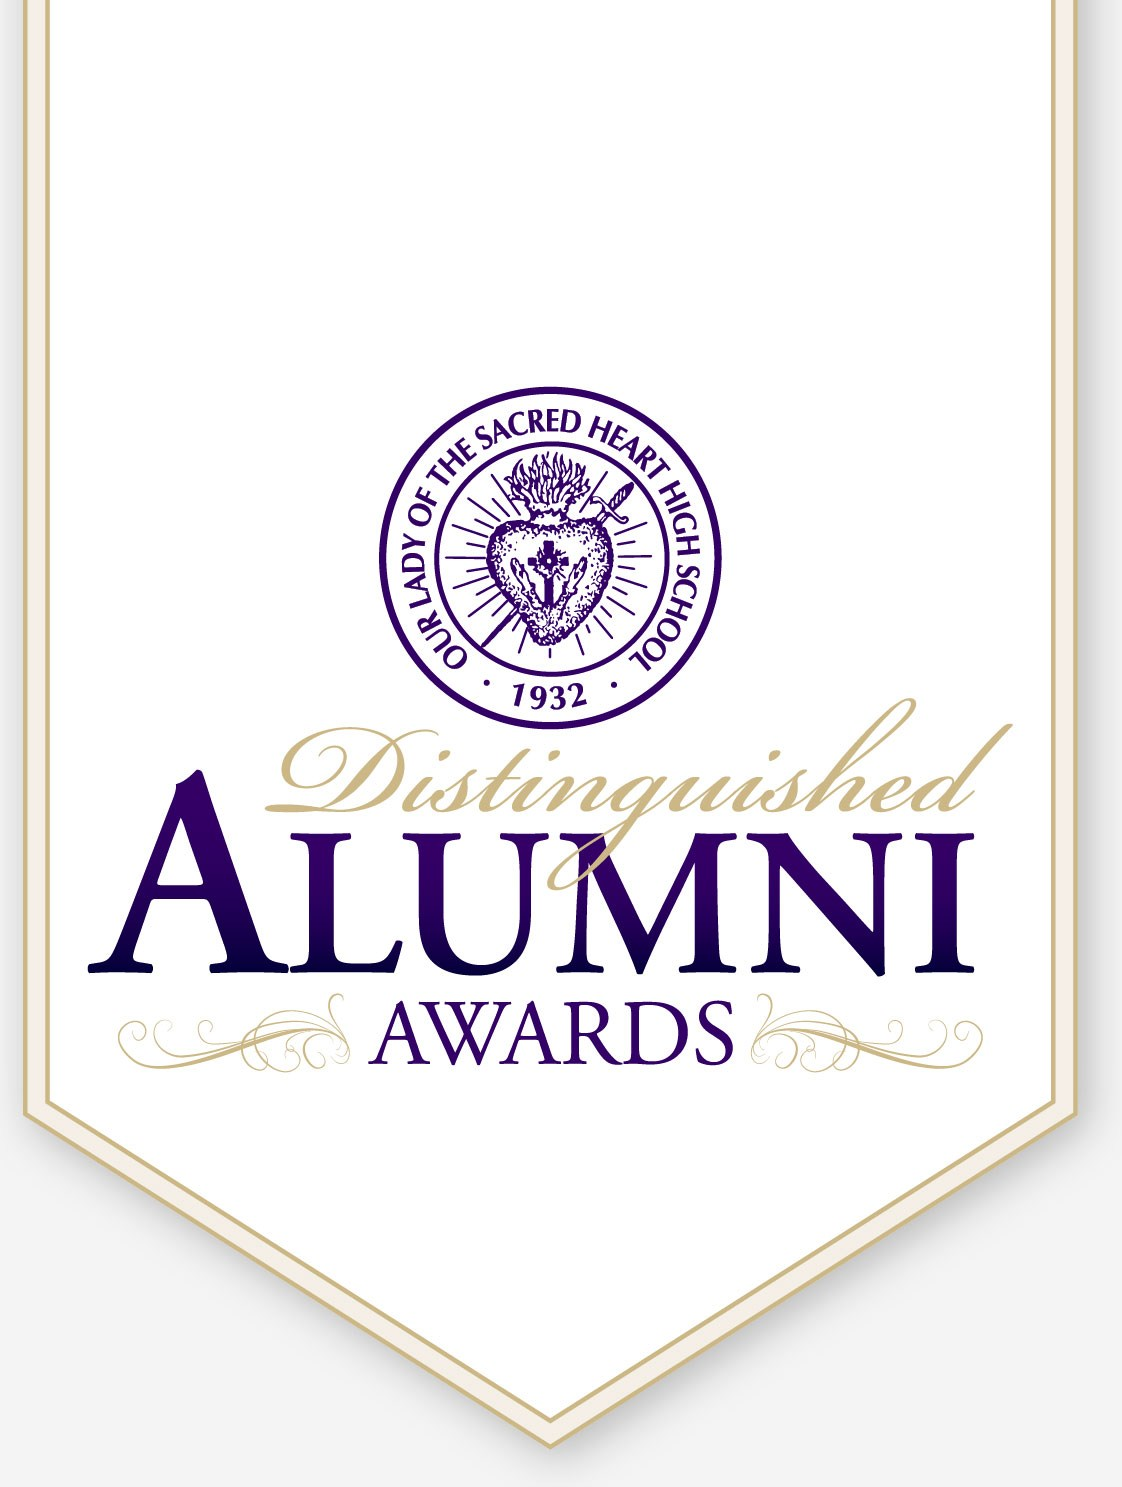 Distinguished Alumni Awards logo